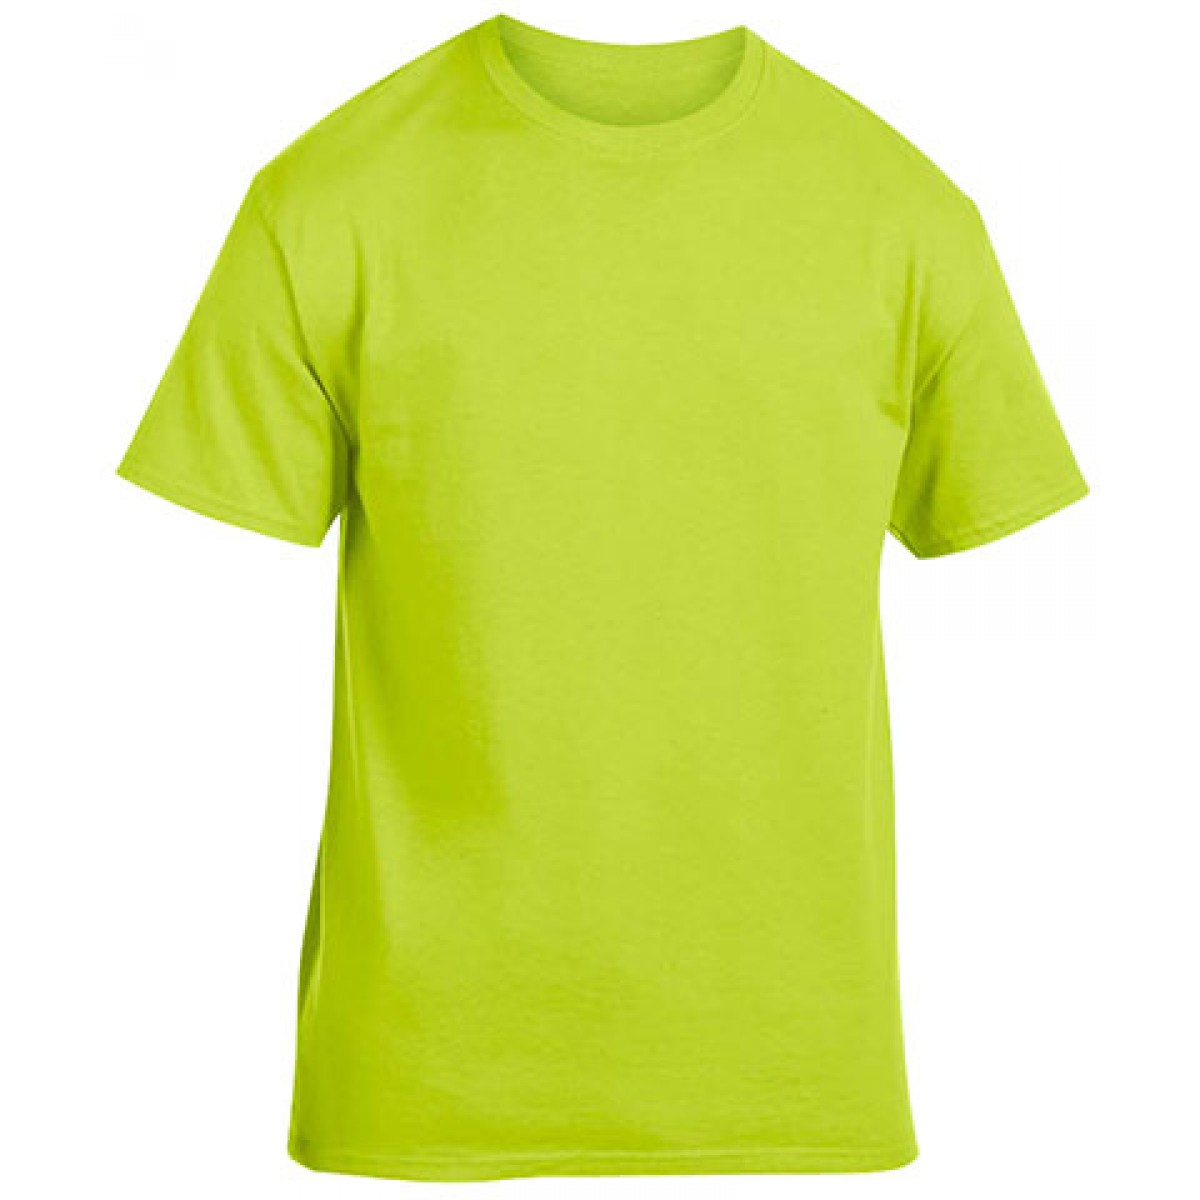 Heavy Cotton Activewear T-Shirt-Safety Green-L